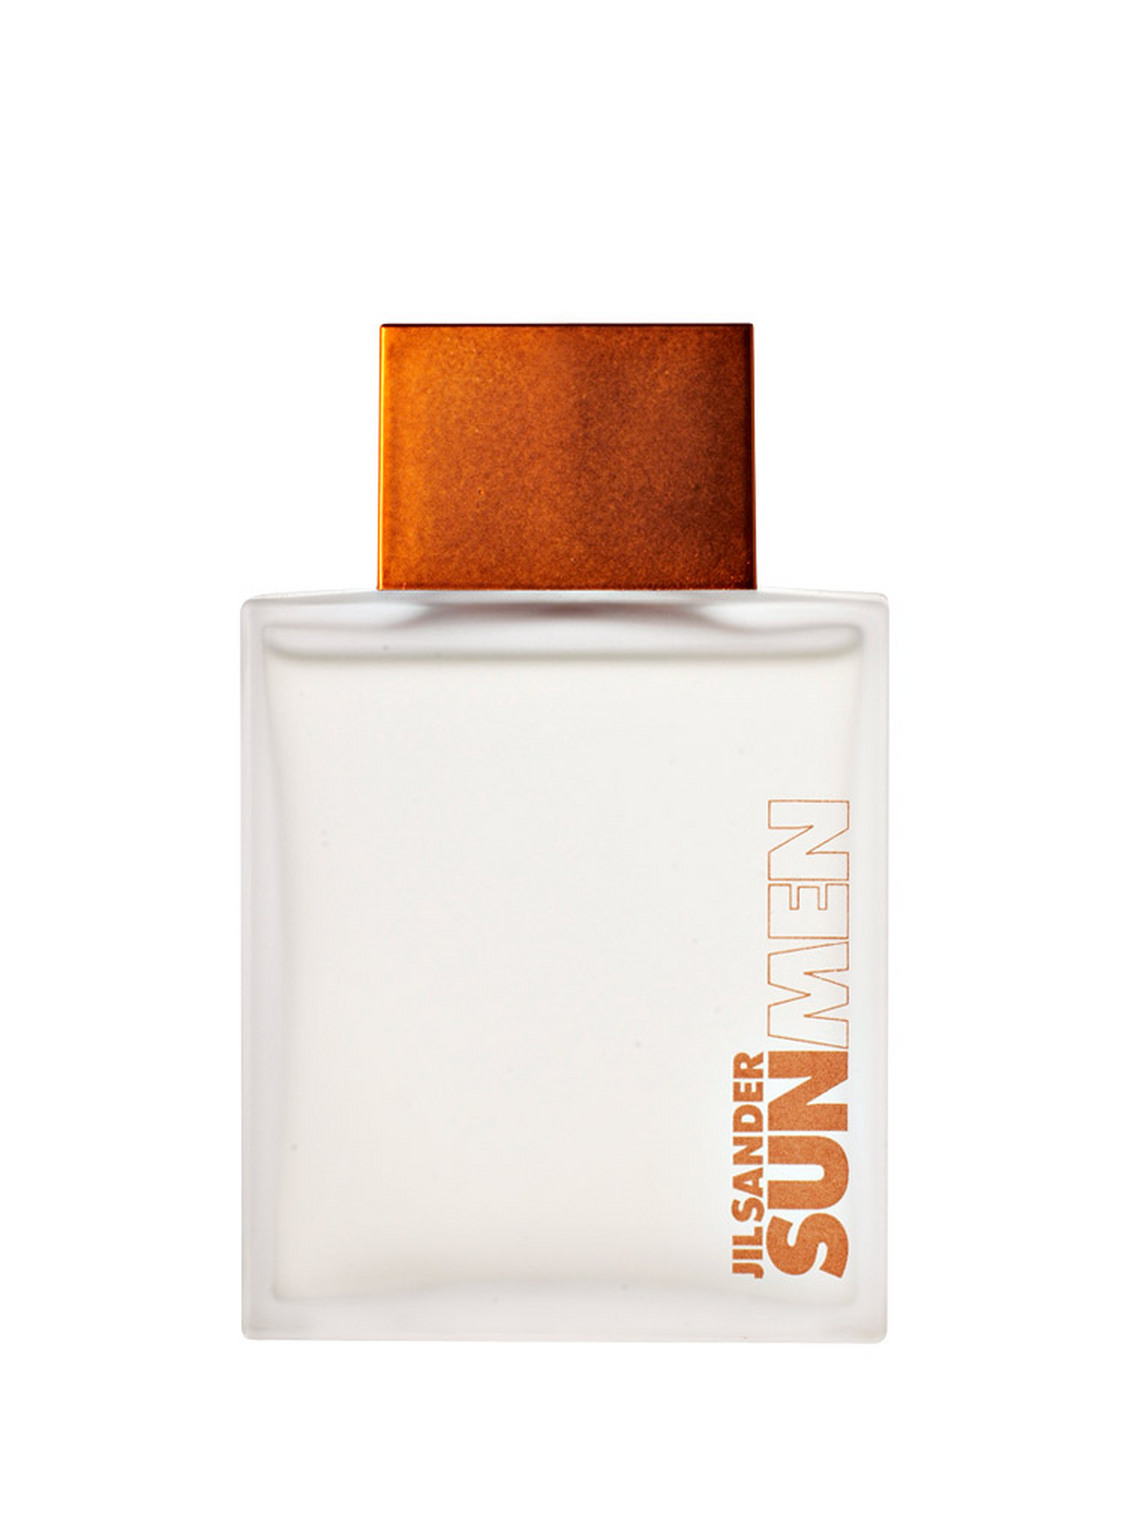 Jil Sander Fragrances Sun Men Eau de Toilette 75 ml von JIL SANDER FRAGRANCES